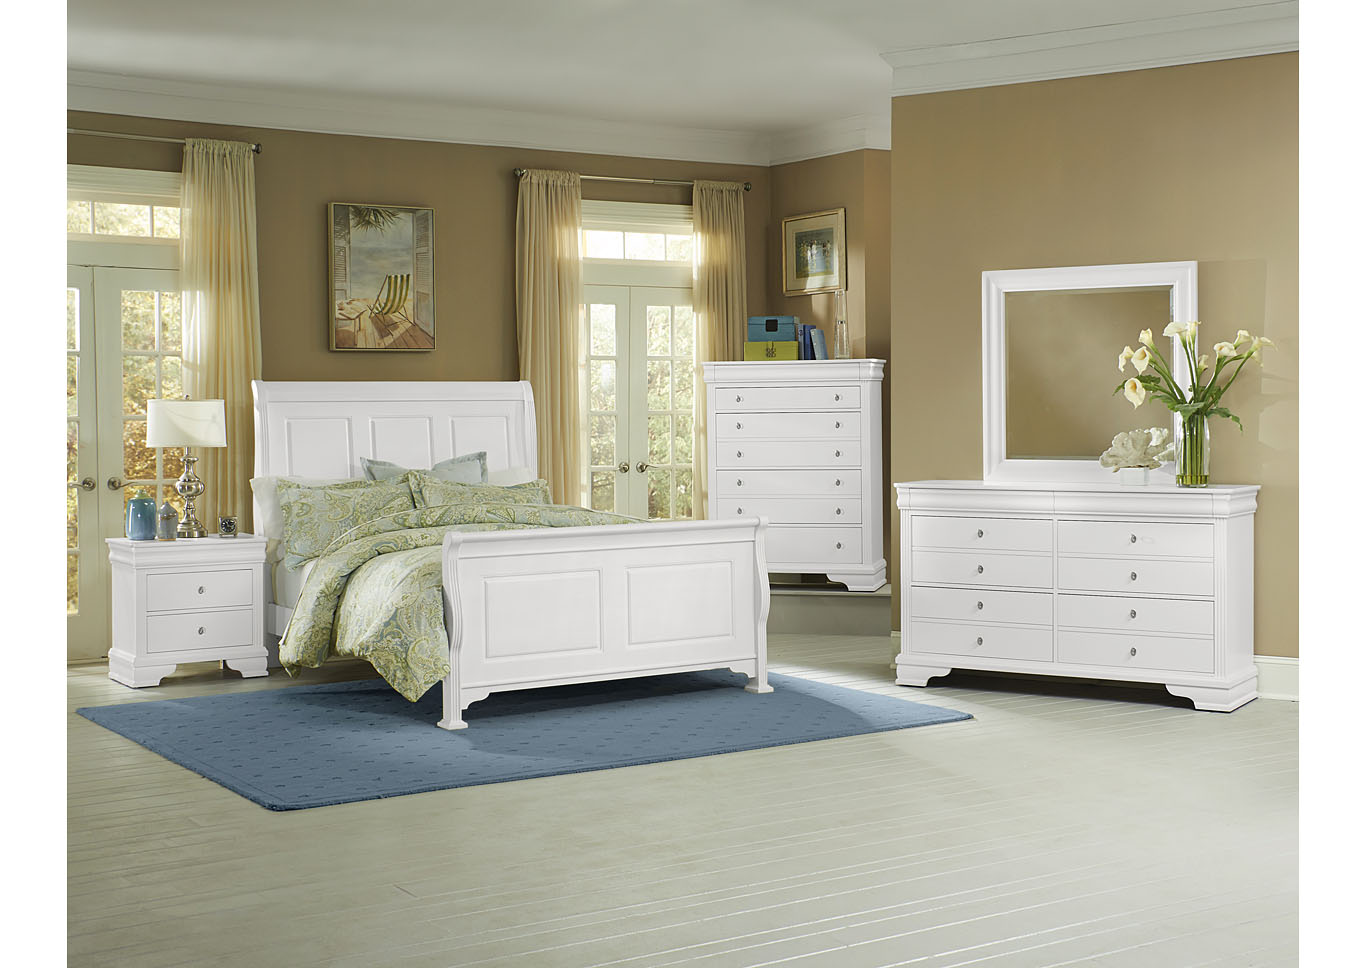 French Market Soft White Queen Poster Bed,Vaughan-Bassett